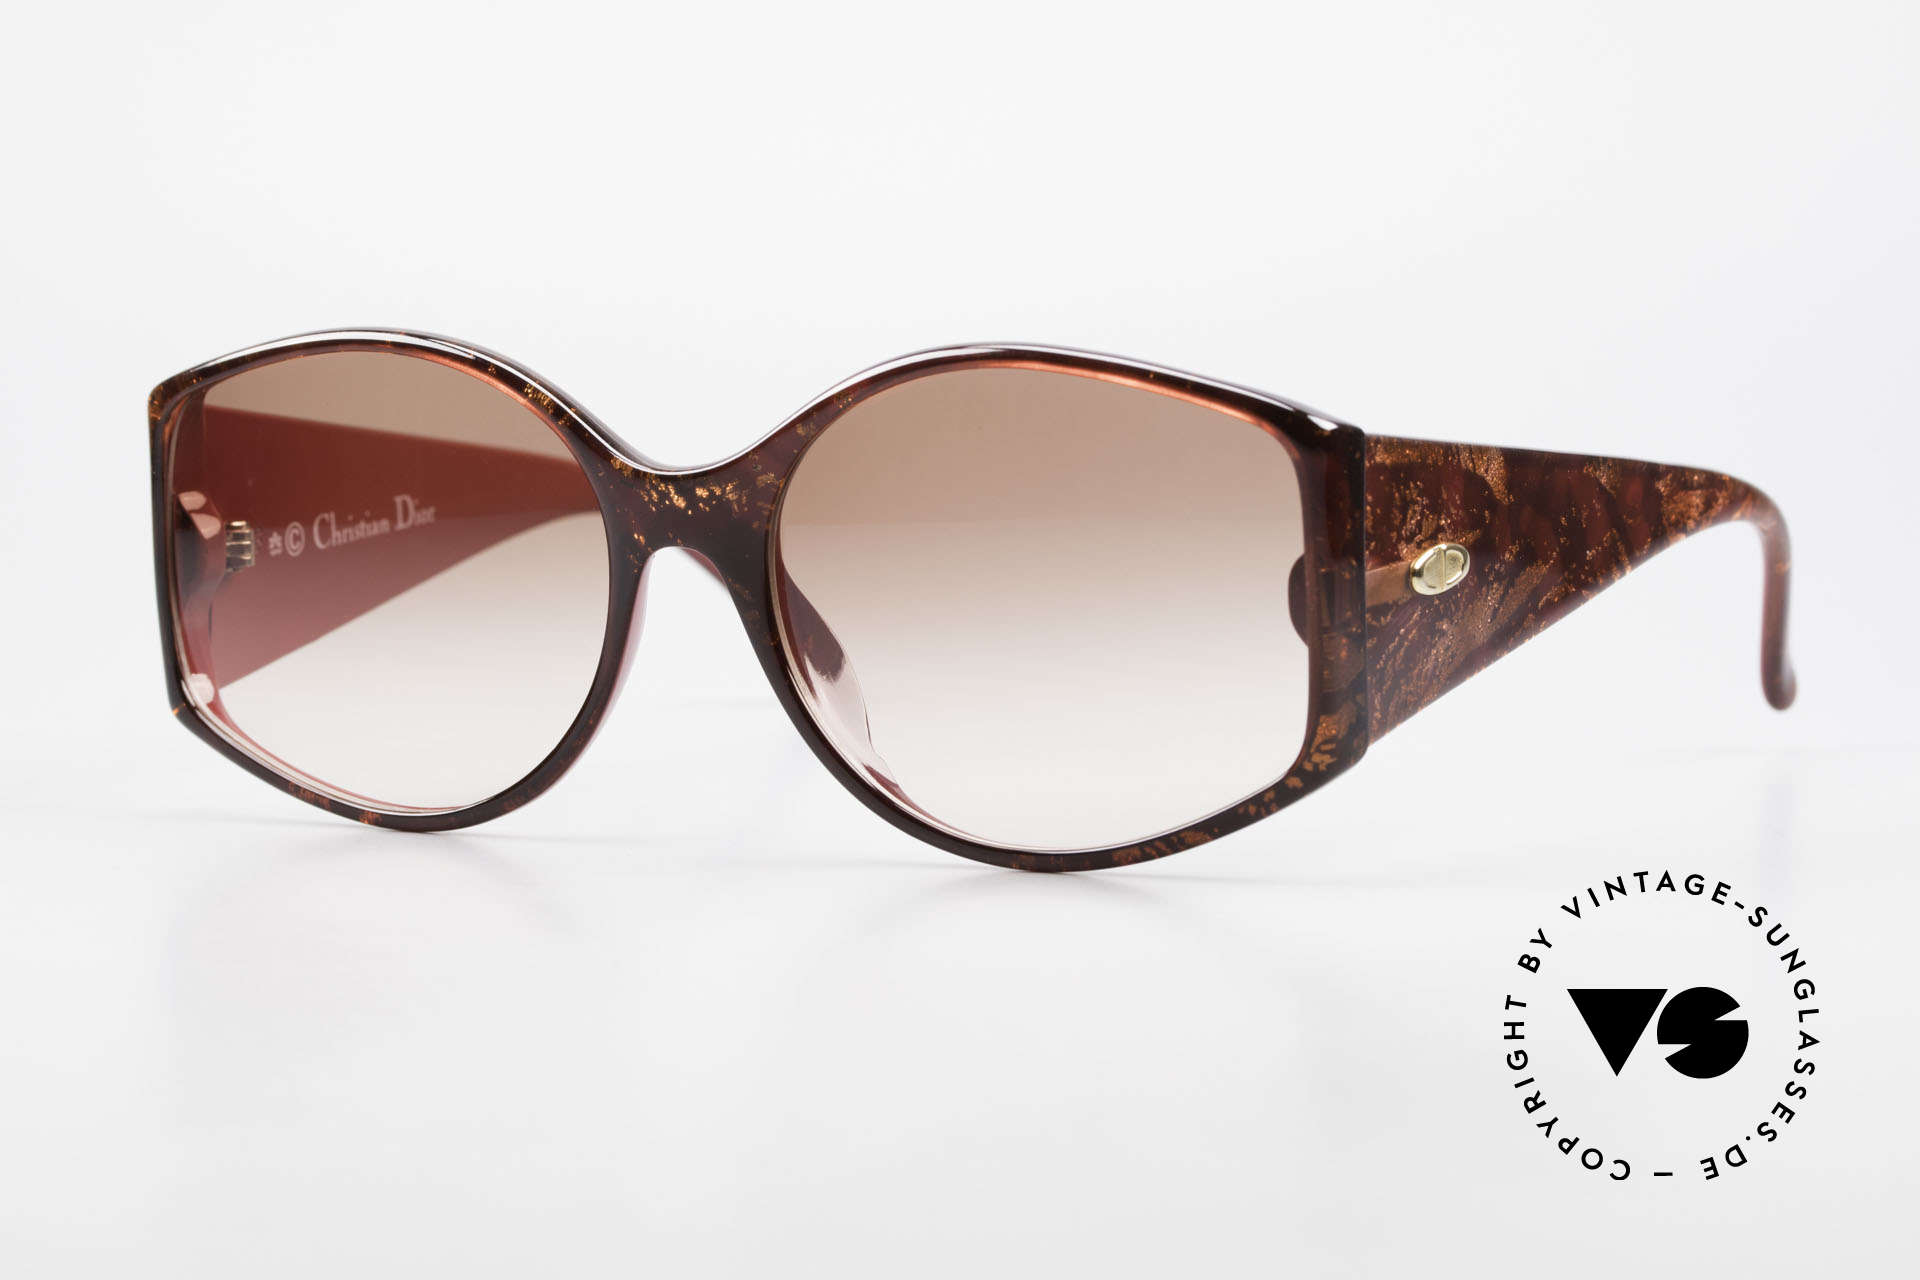 Christian Dior 2435 Designer 80's Sunglasses Ladies, magnificent DIOR vintage sunglasses from 1988, Made for Women